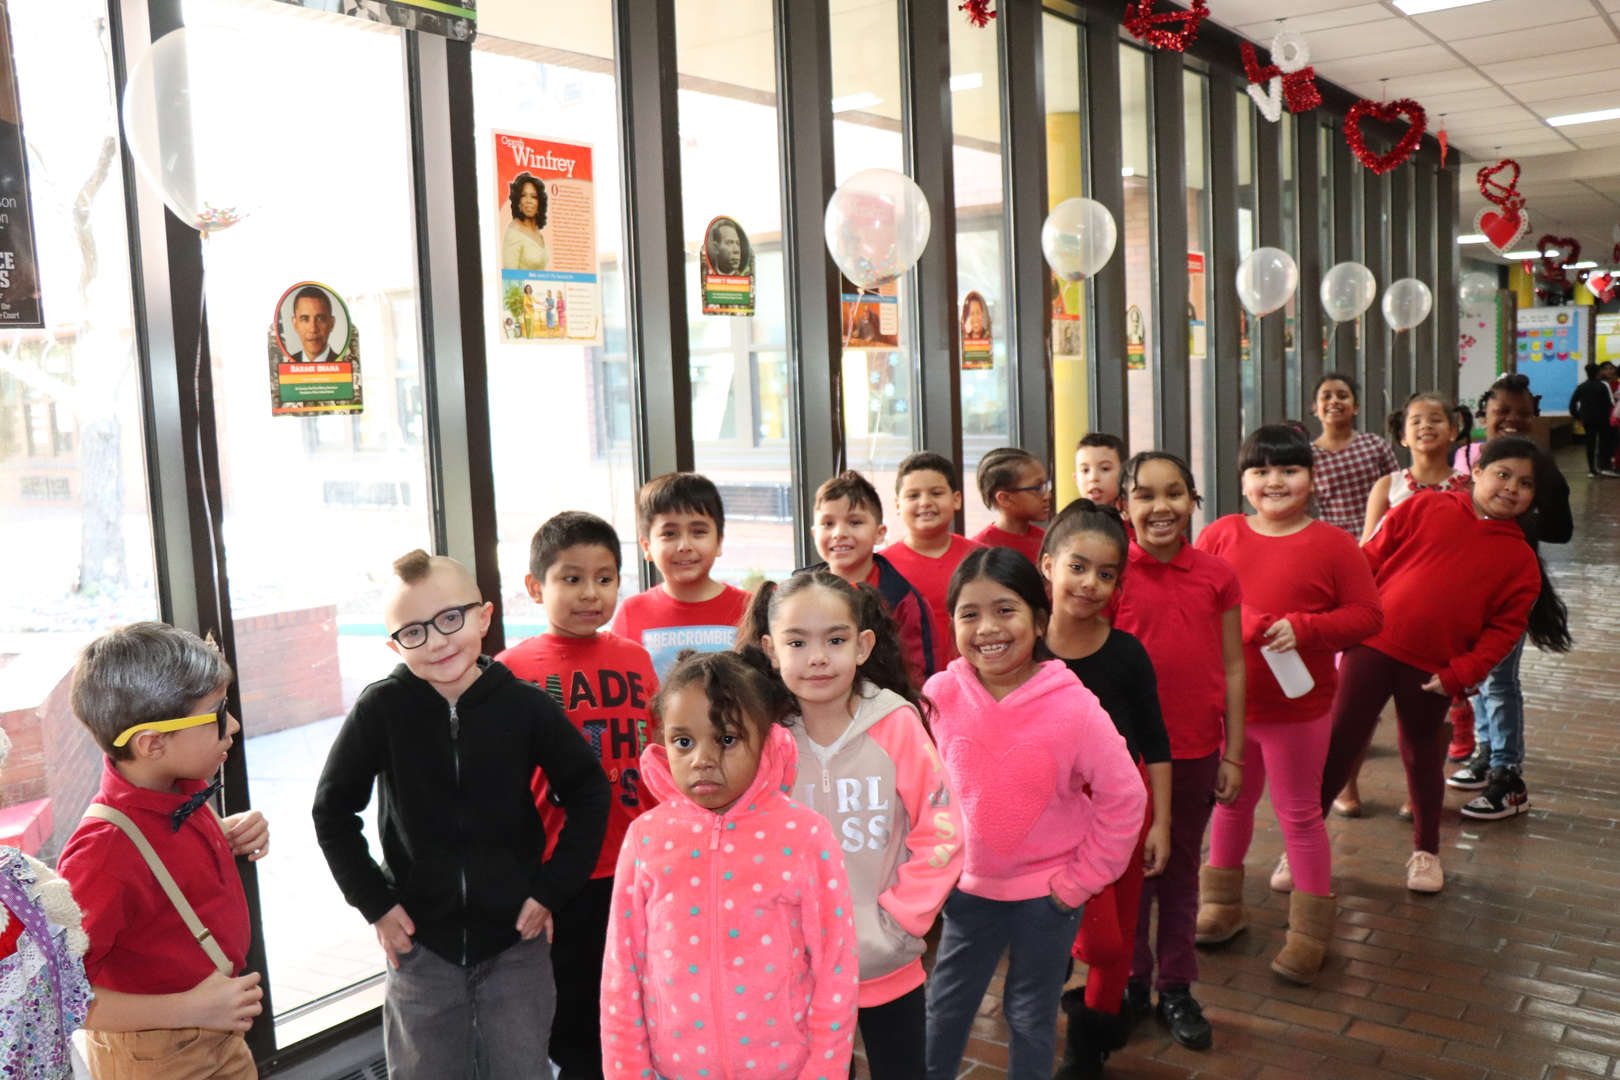 Second grade students celebrating 100 day and Valentine's Day.